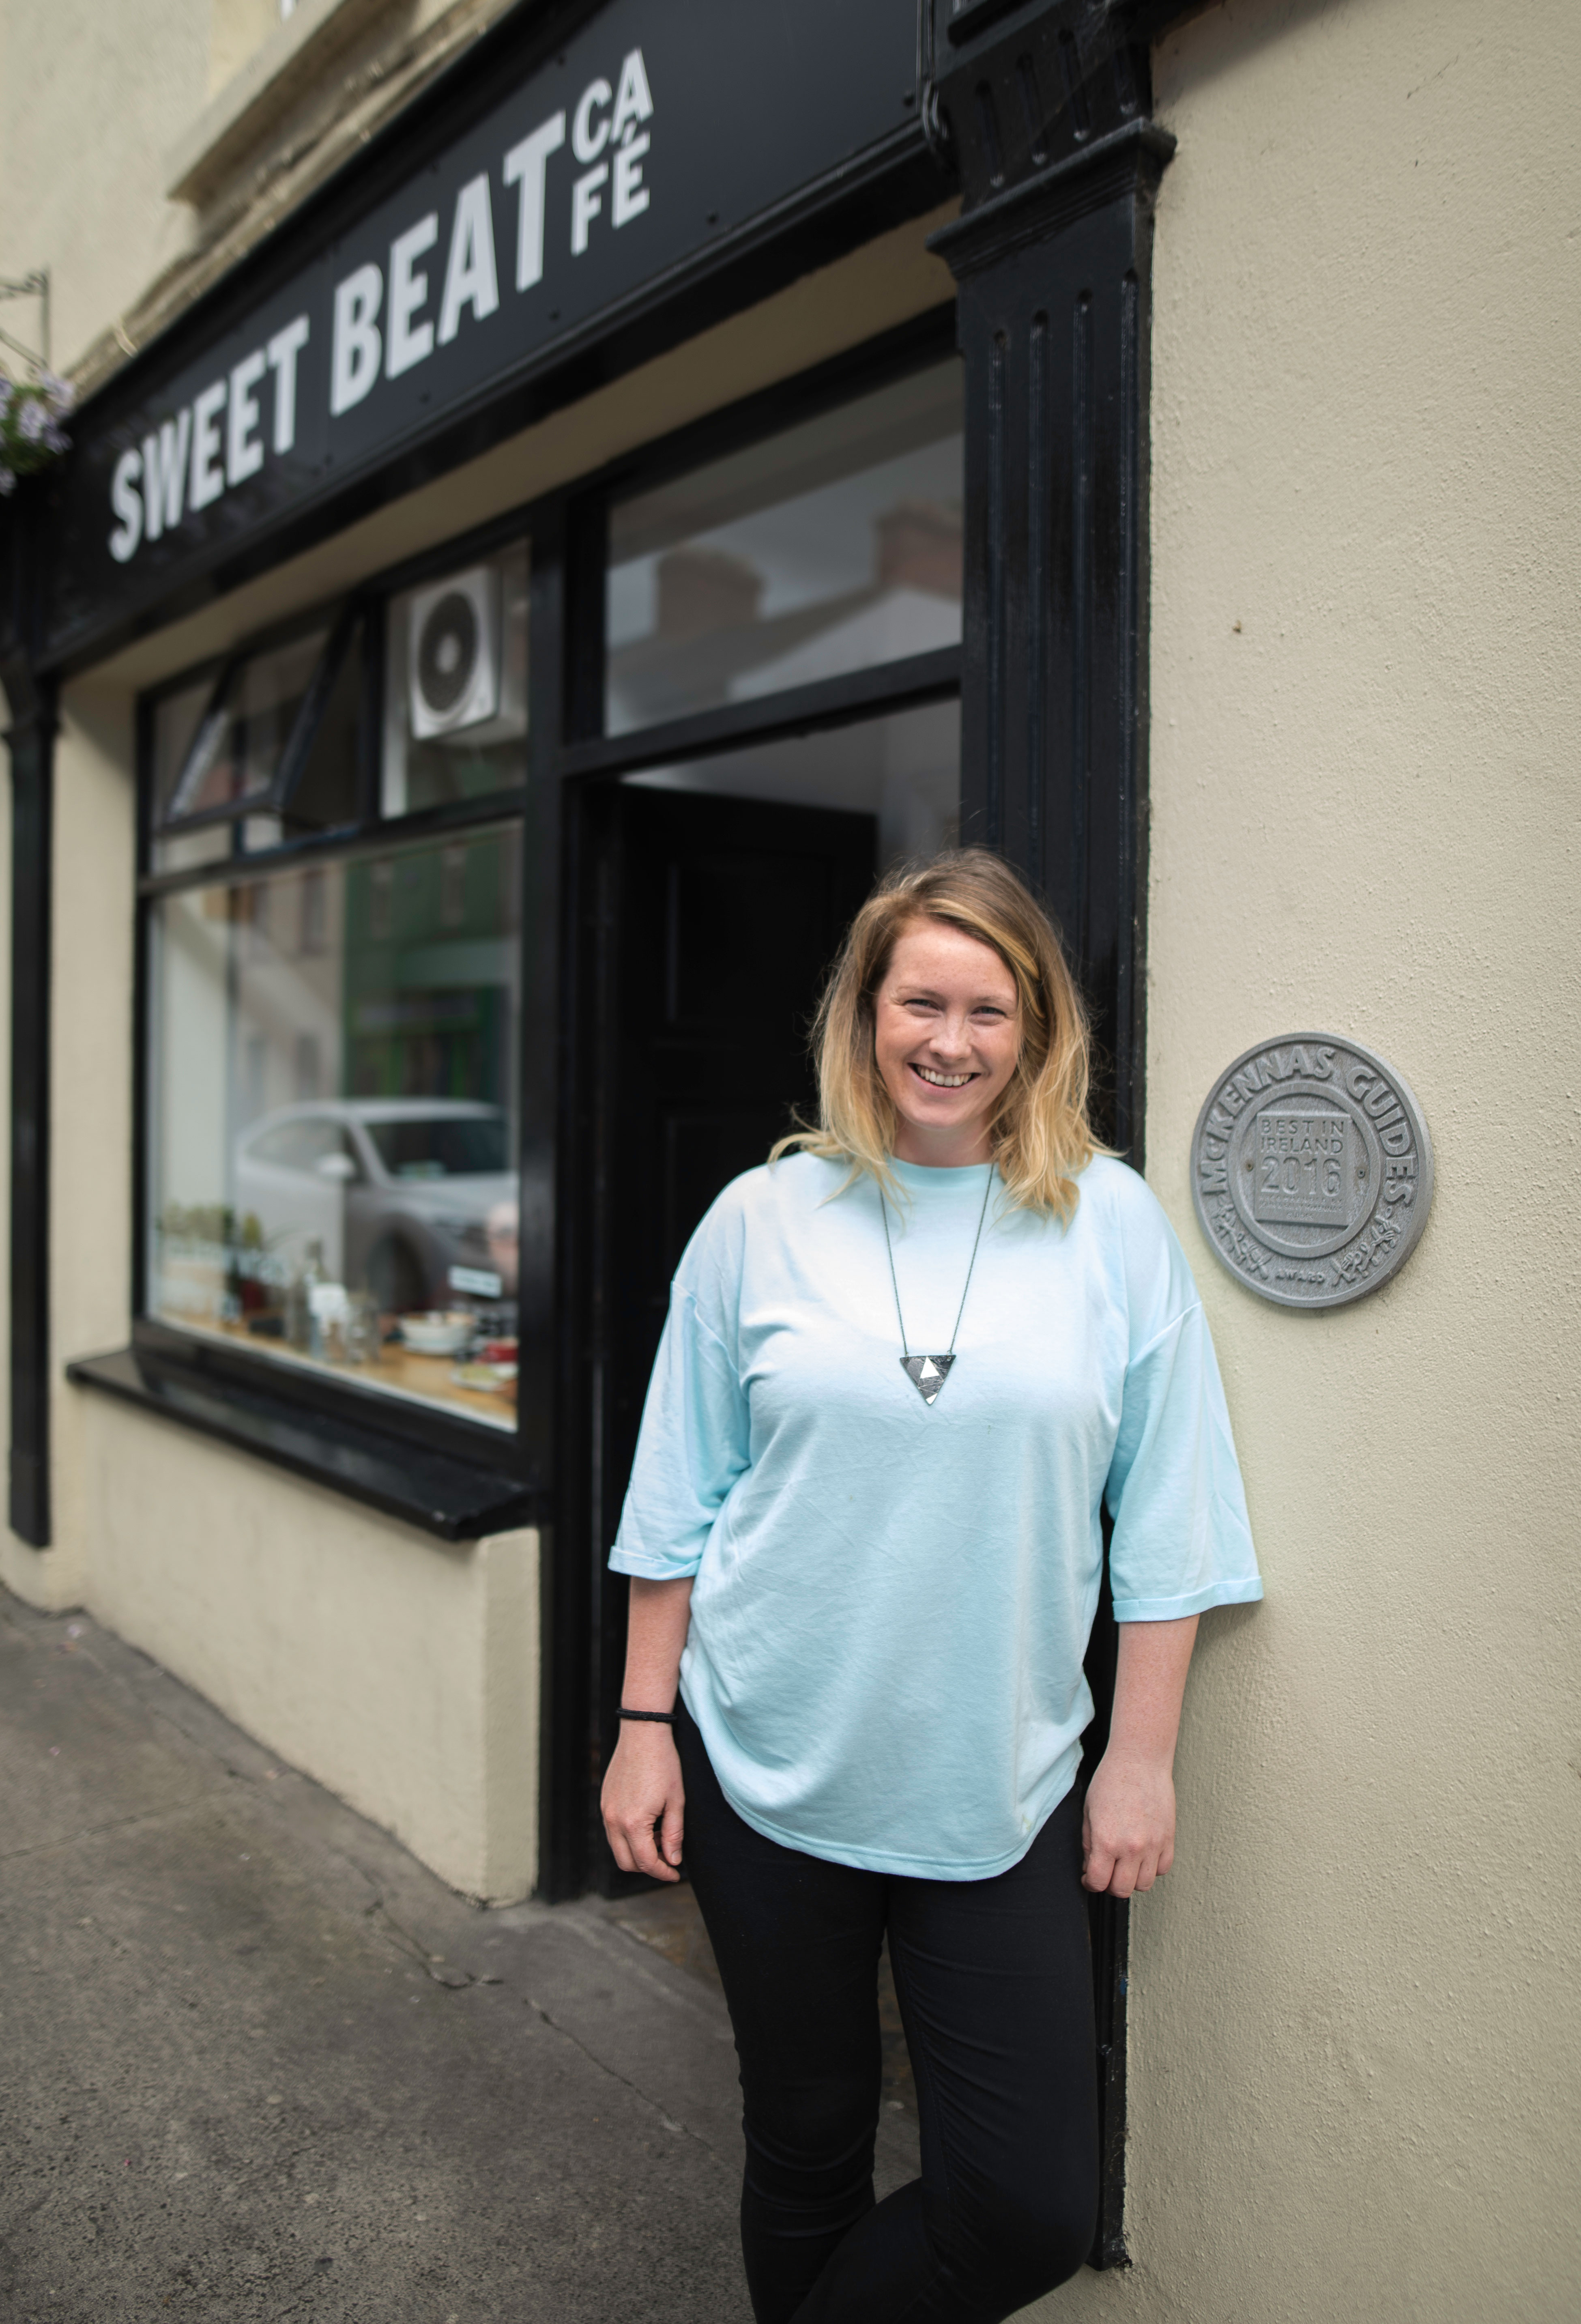 Faces Of the Sligo Food Trail: Carolanne Rushe, Sweet Beat